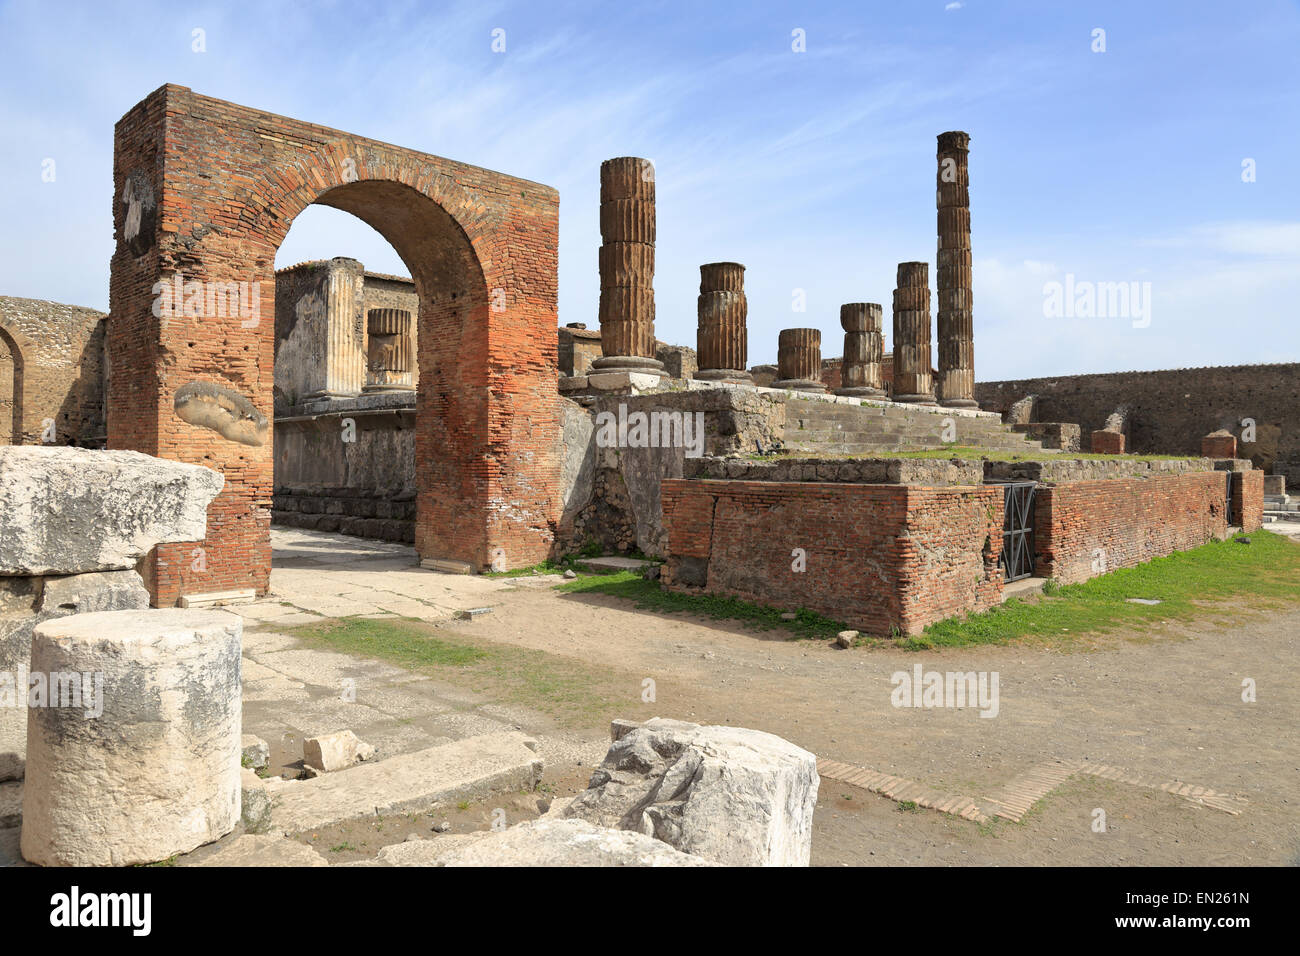 Arch and Temple of Jupiter in the Forum, Pompeii, Italy. - Stock Image